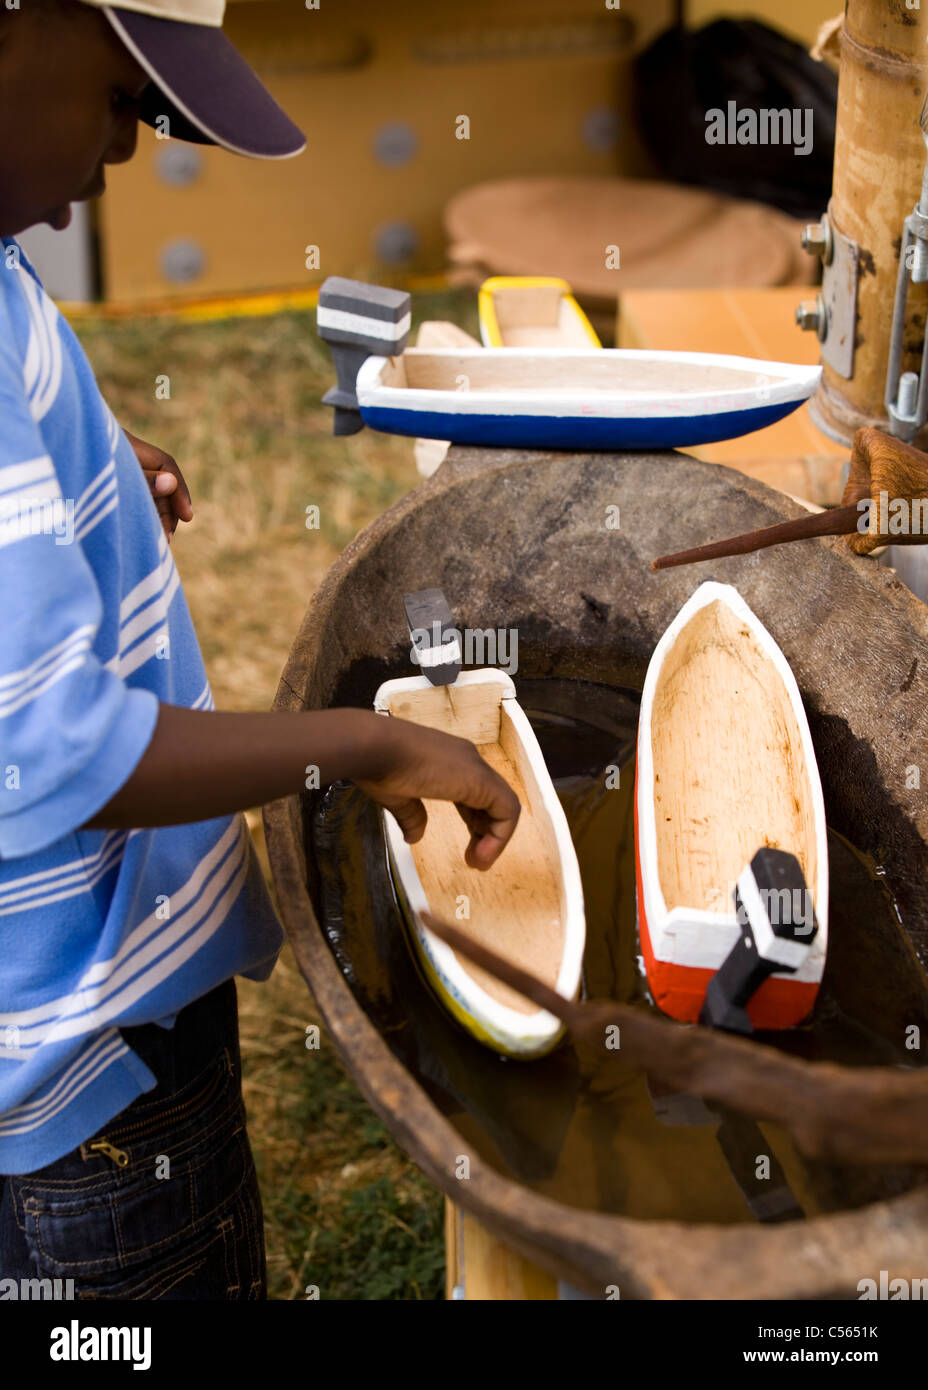 Young African boy inspects toy wooden boats in tub of water Stock ...